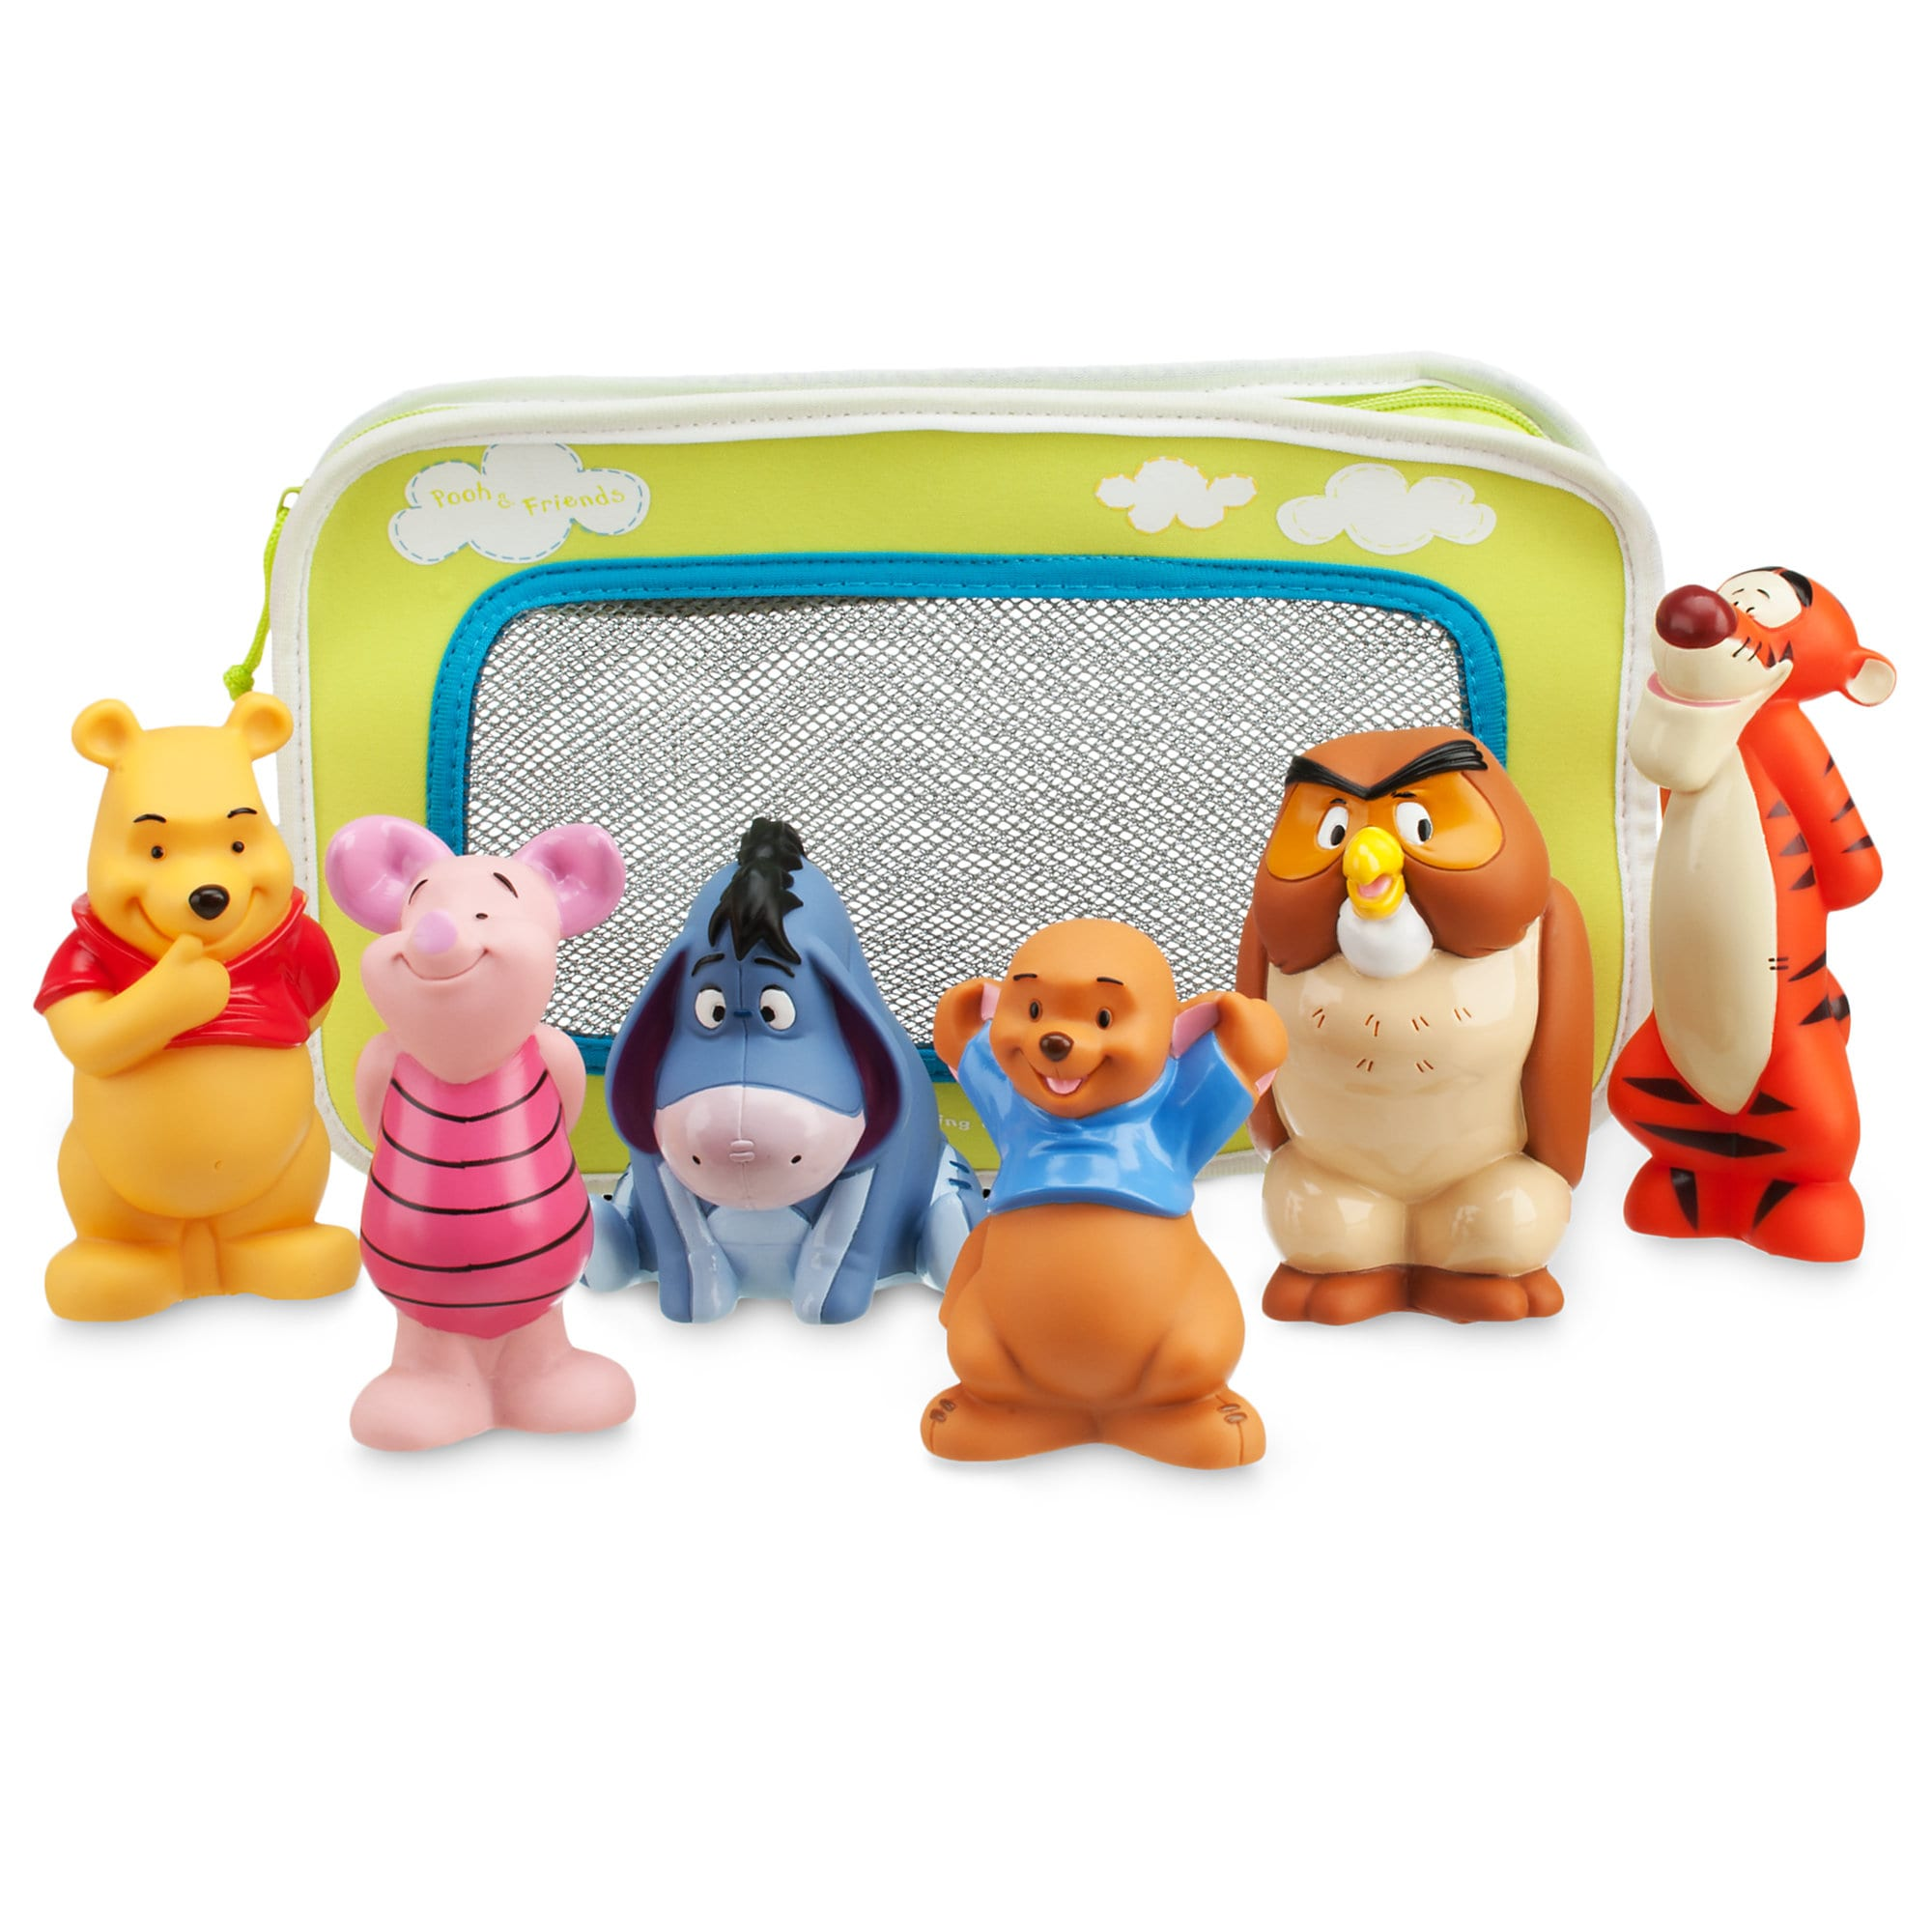 Nemo Bathroom Set Winnie The Pooh And Pals Bath Toy Set For Baby